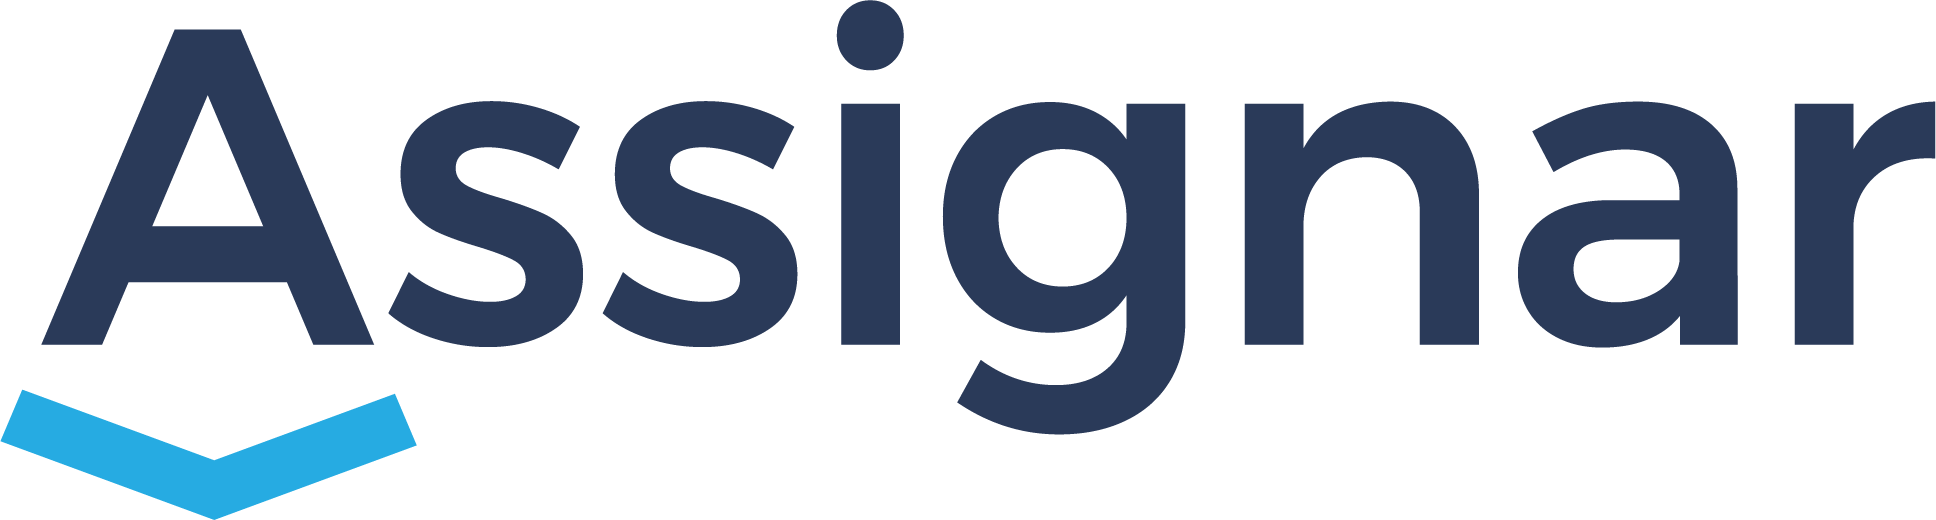 new-assignar-logo (1).png